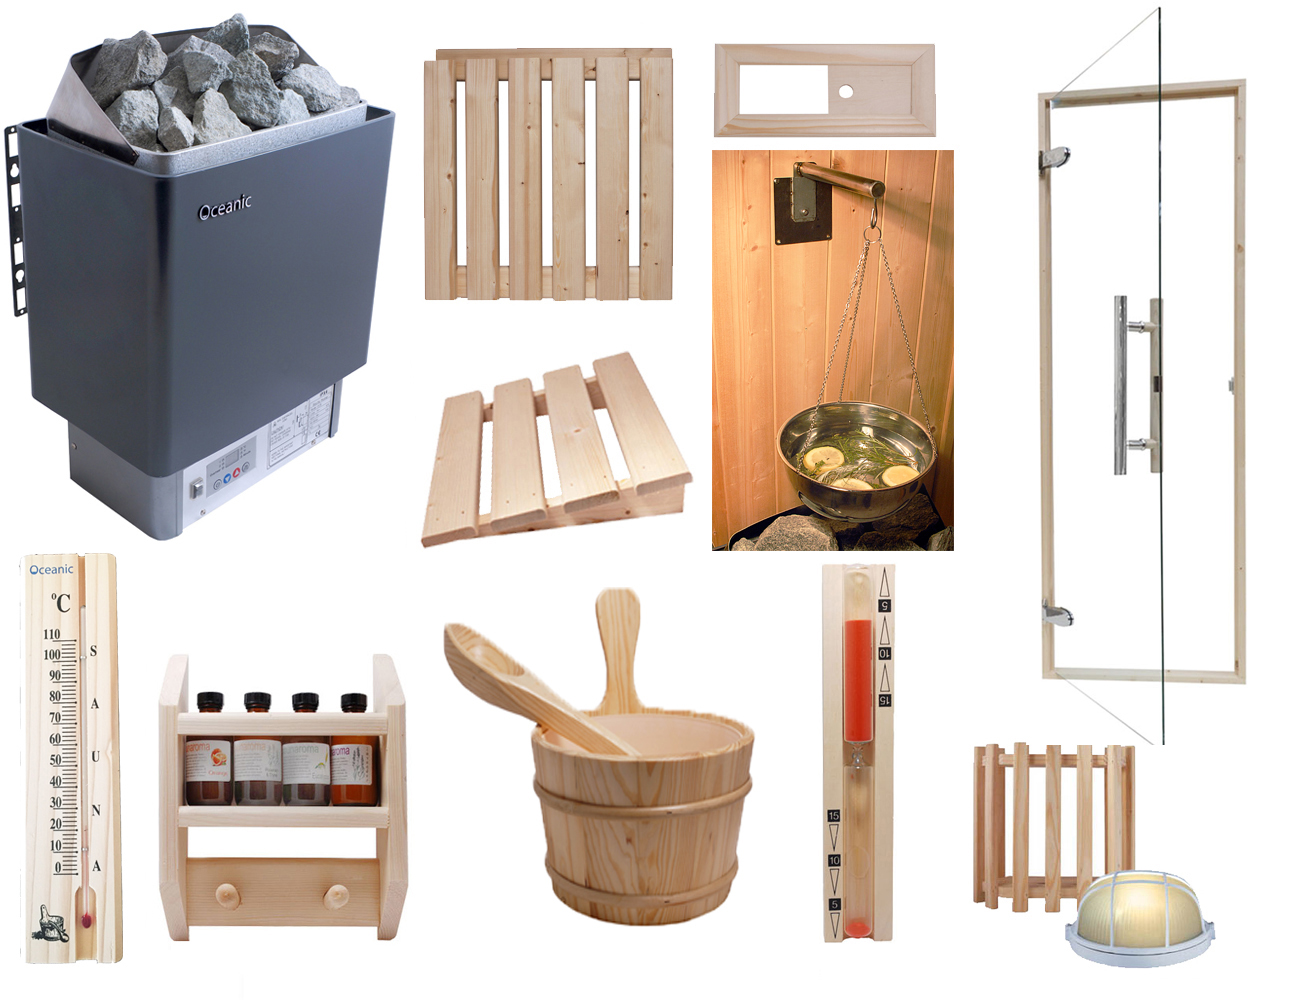 Home Sauna Installation Kits